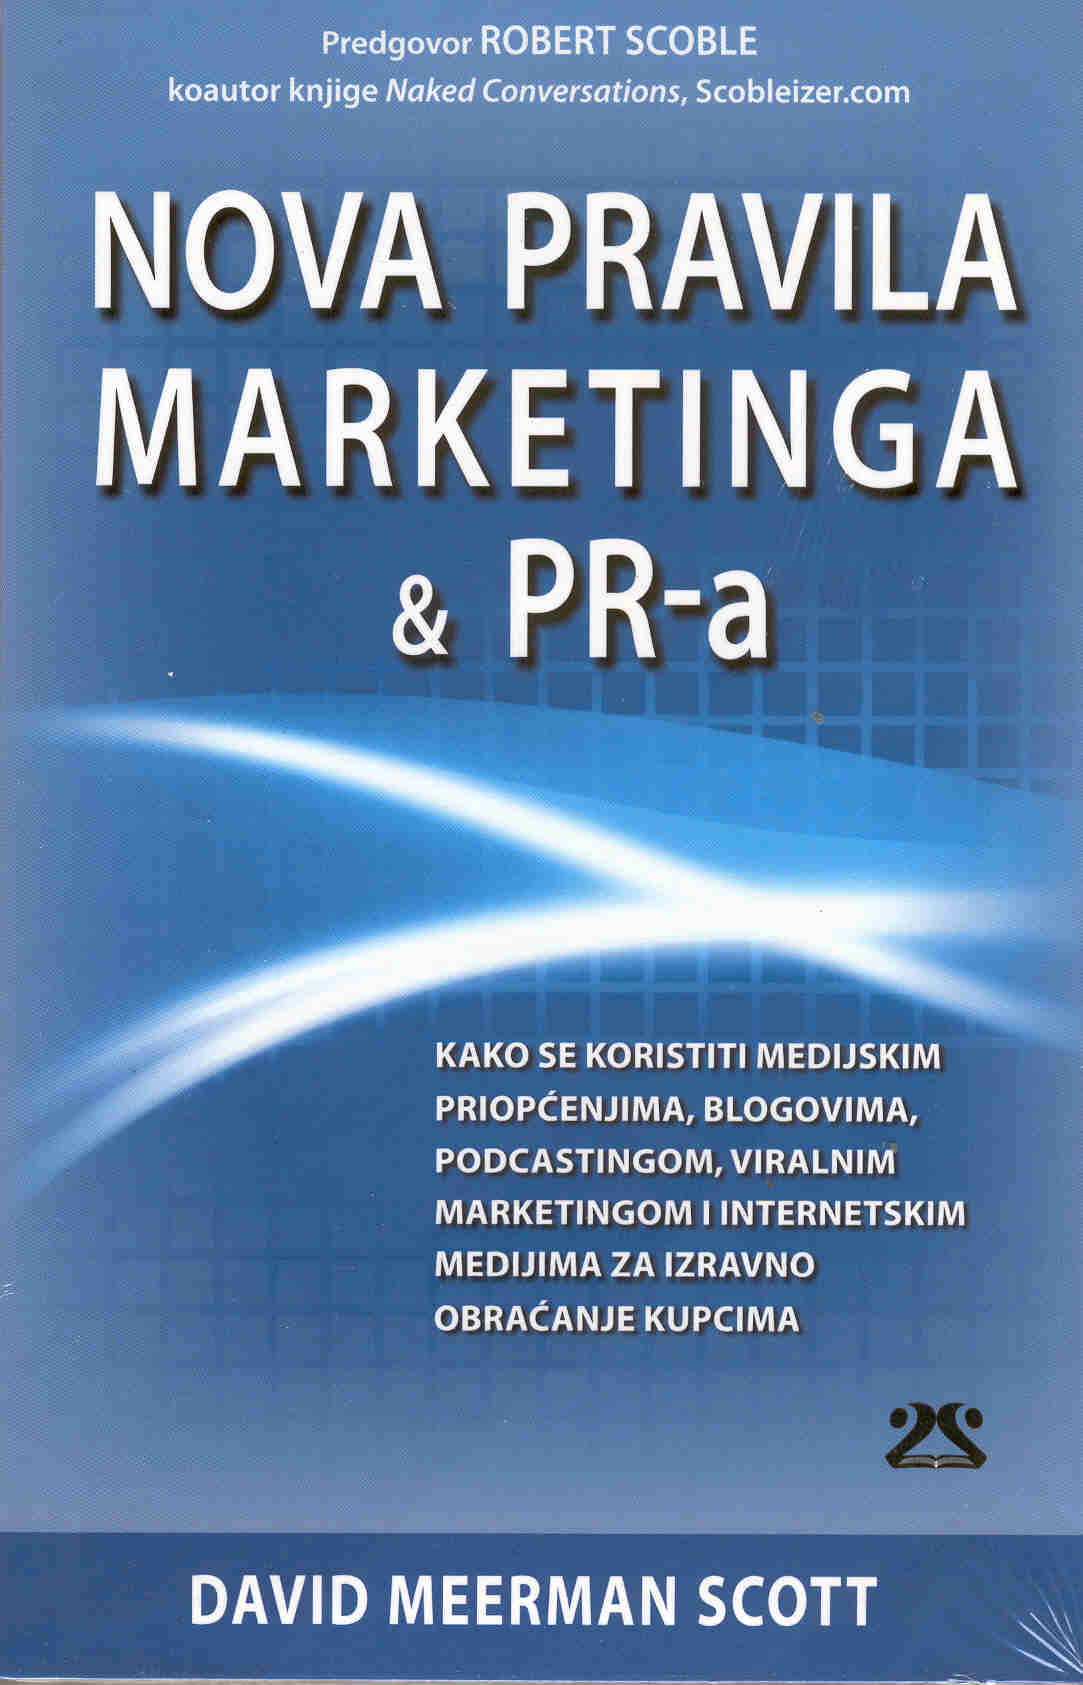 NOVA PRAVILA MARKETINGA & PR-a